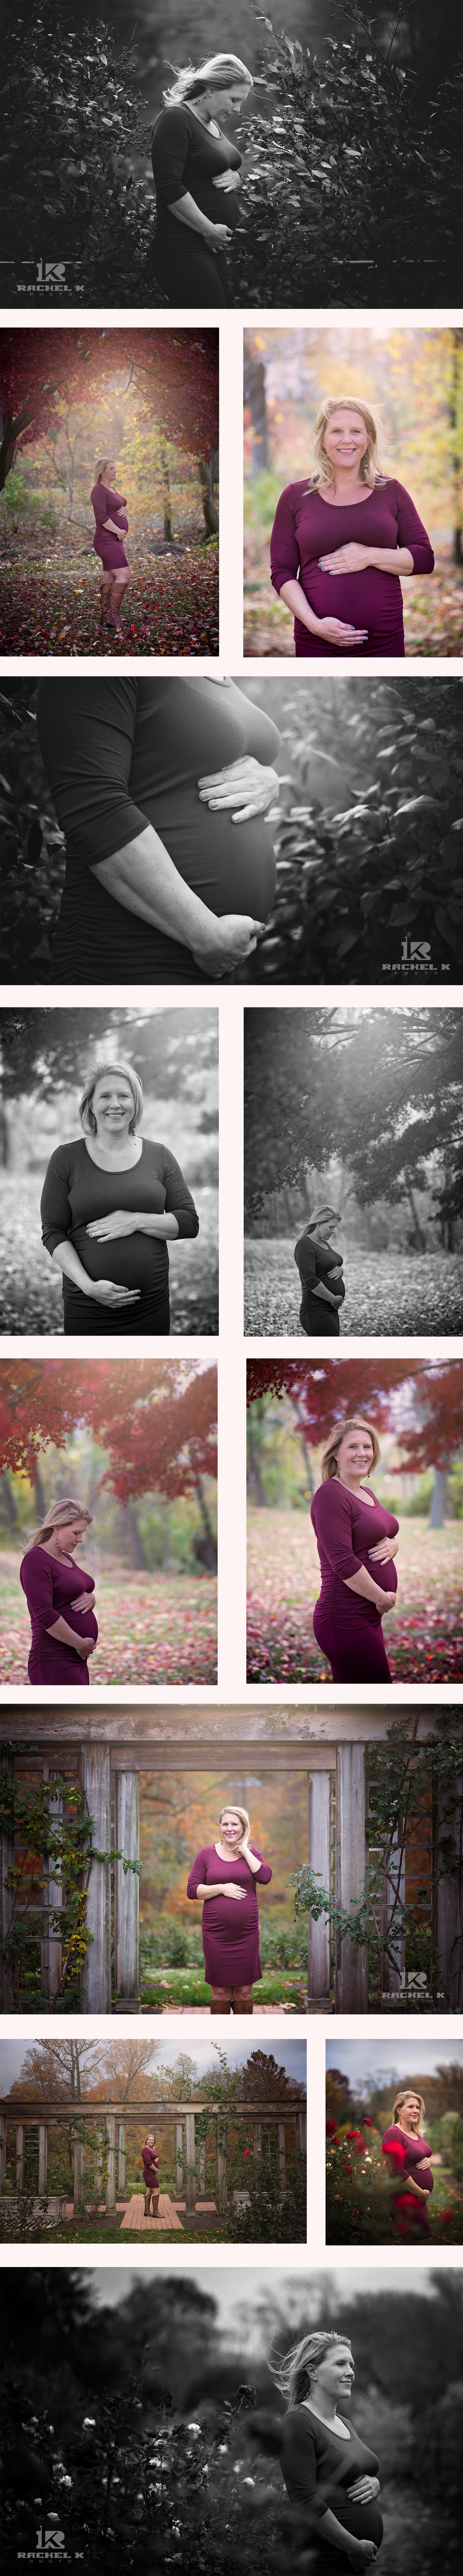 Arlington, VA winter maternity session by Rachel K Photo